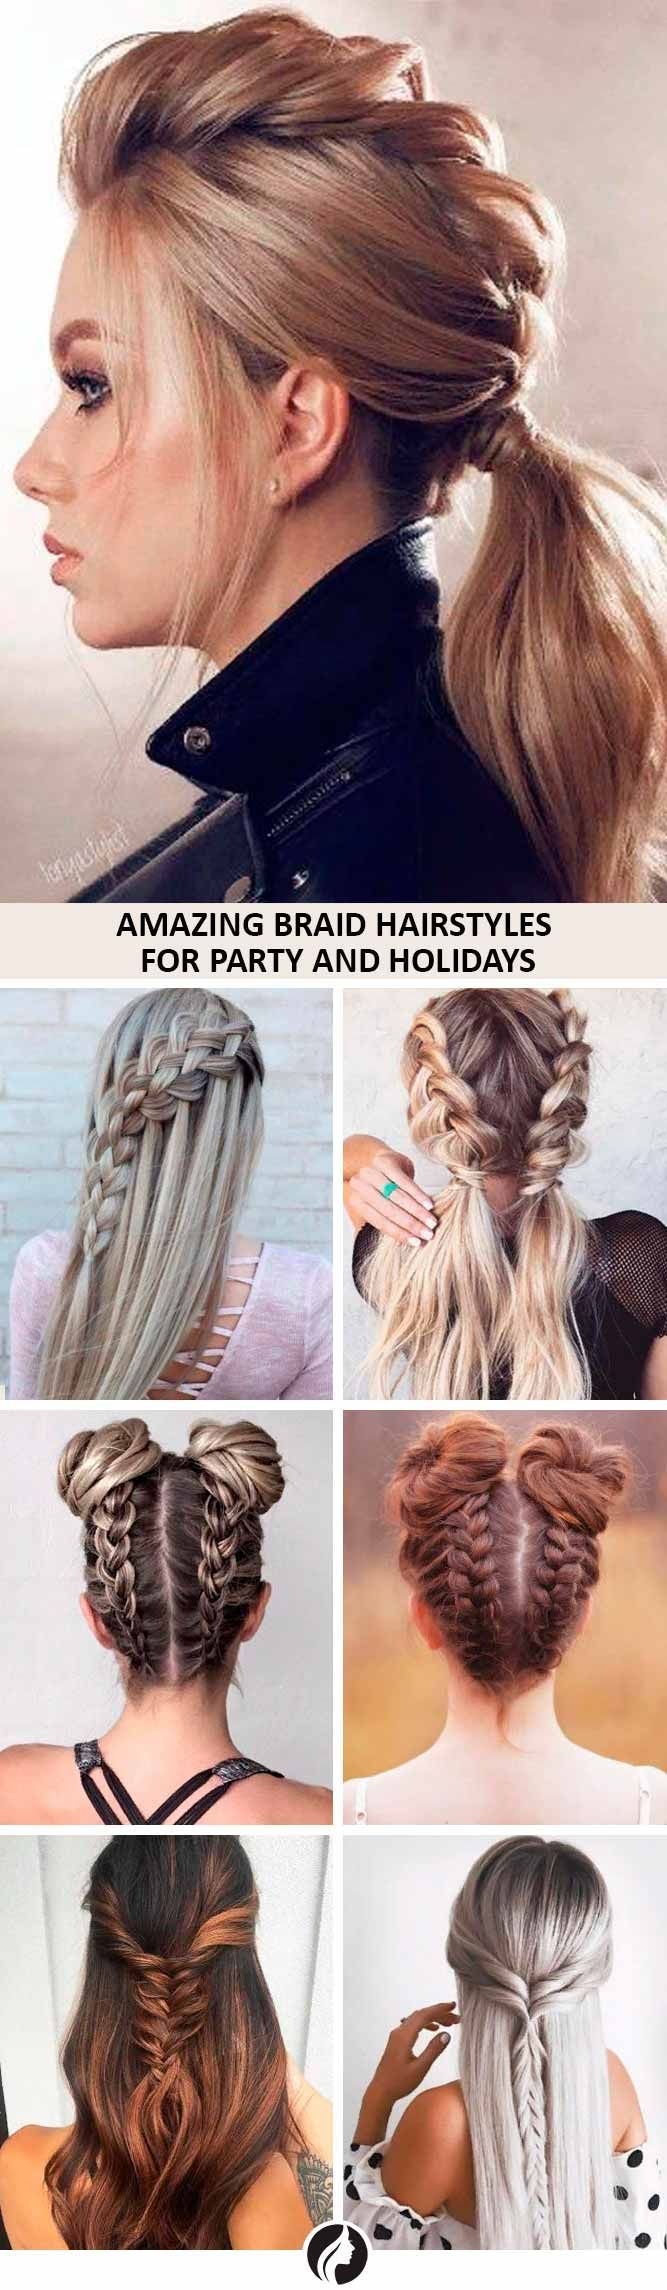 "Get inspiration for braid hairstyles for Christmas from our collection of 63 ideas in case you are eager to slay for real at any party. ★ See more: <a href=""https://glaminati.com/christmas-party-braid-hairstyles/"" rel=""nofollow"" target=""_blank"">glaminati.com/…</a> <a class=""pintag"" href=""/explore/glaminati/"" title=""#glaminati explore Pinterest"">#glaminati</a> <a class=""pintag"" href=""/explore/lifestyle/"" title=""#lifestyle explore Pinterest"">#lifestyle</a><p><a href=""http://www.homeinteriordesign.org/2018/02/short-guide-to-interior-decoration.html"">Short guide to interior decoration</a></p>"